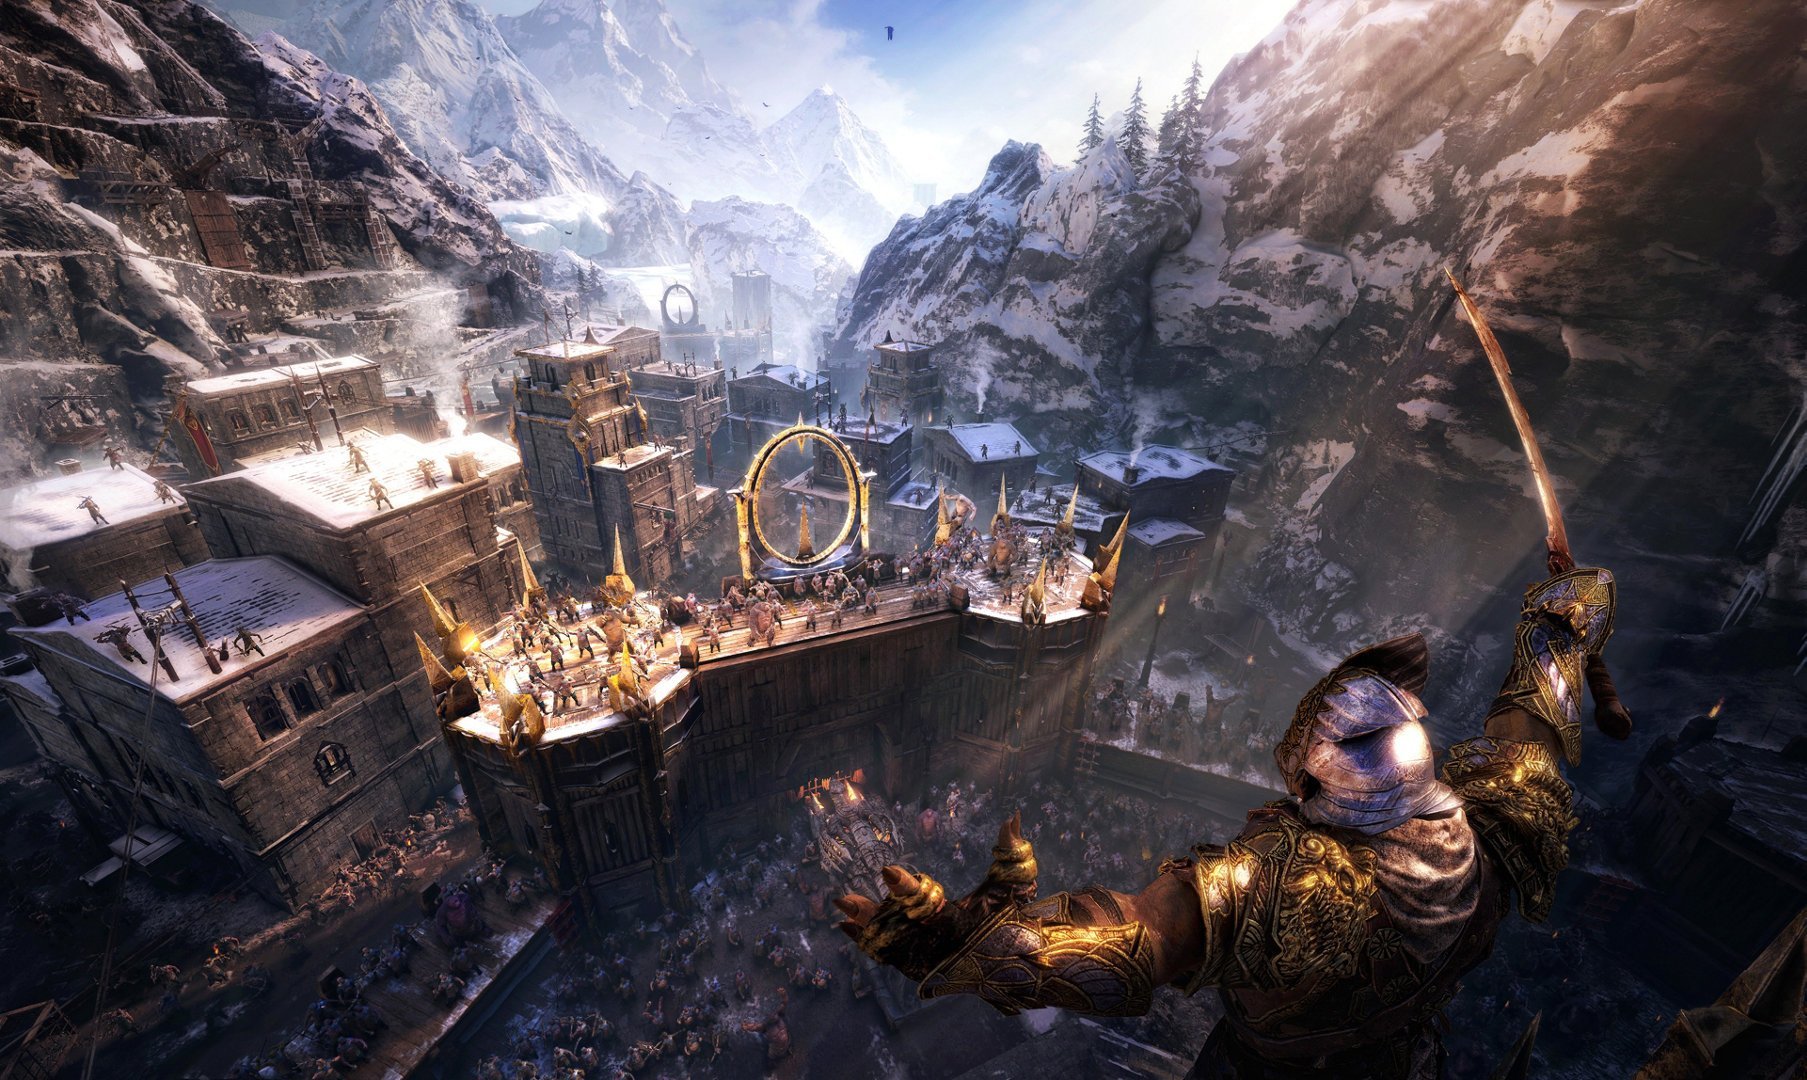 Middle-Earth: Shadow of War will get Scorpio and PS4 Pro support, but no Switch version screenshot